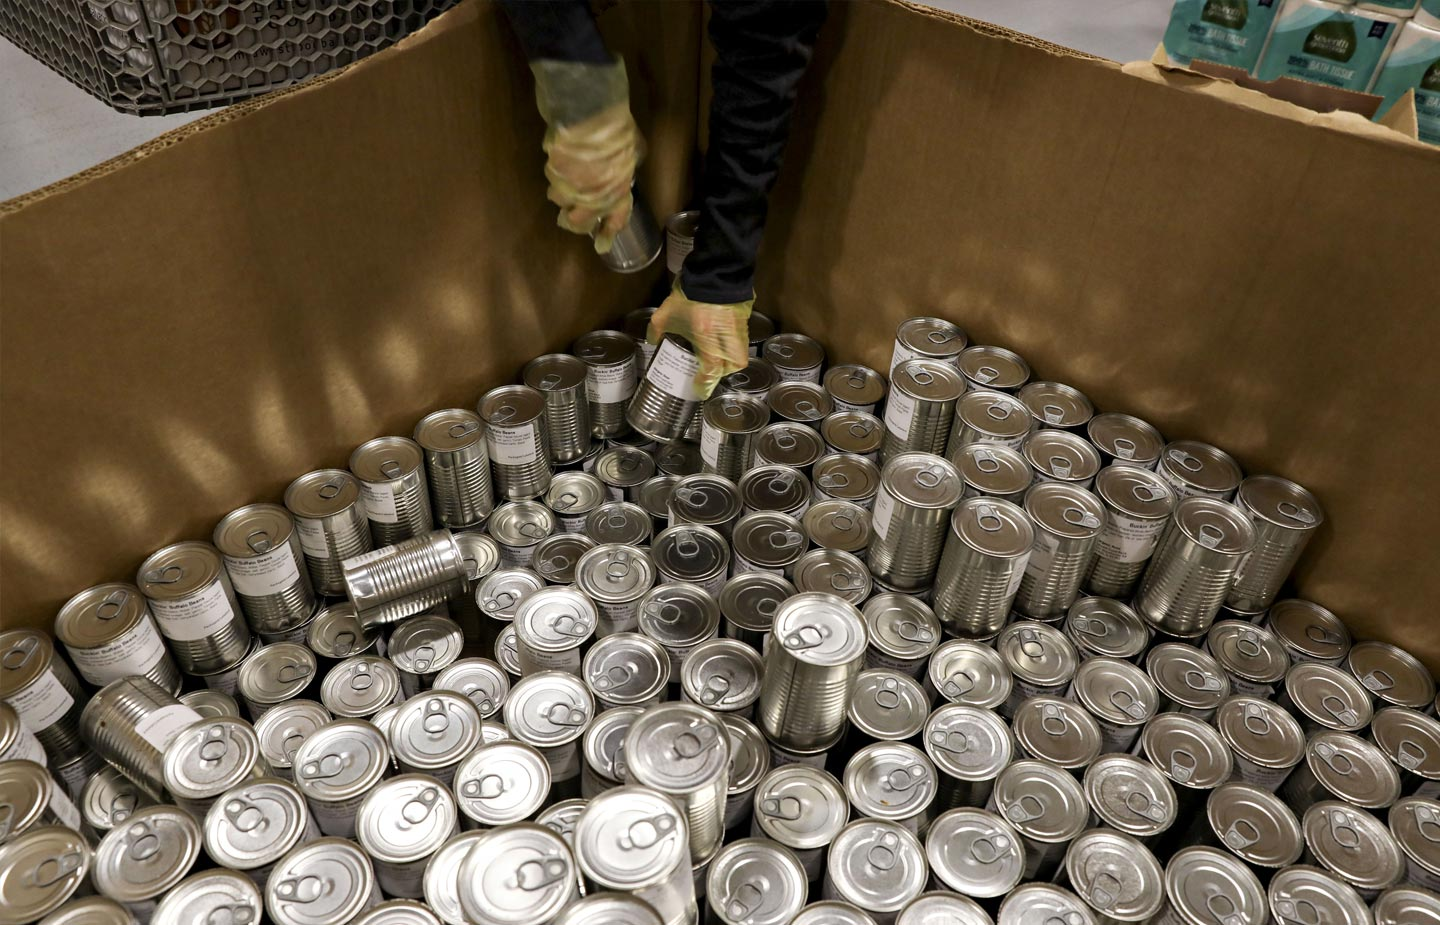 Image of cans being unloaded from a delivery box